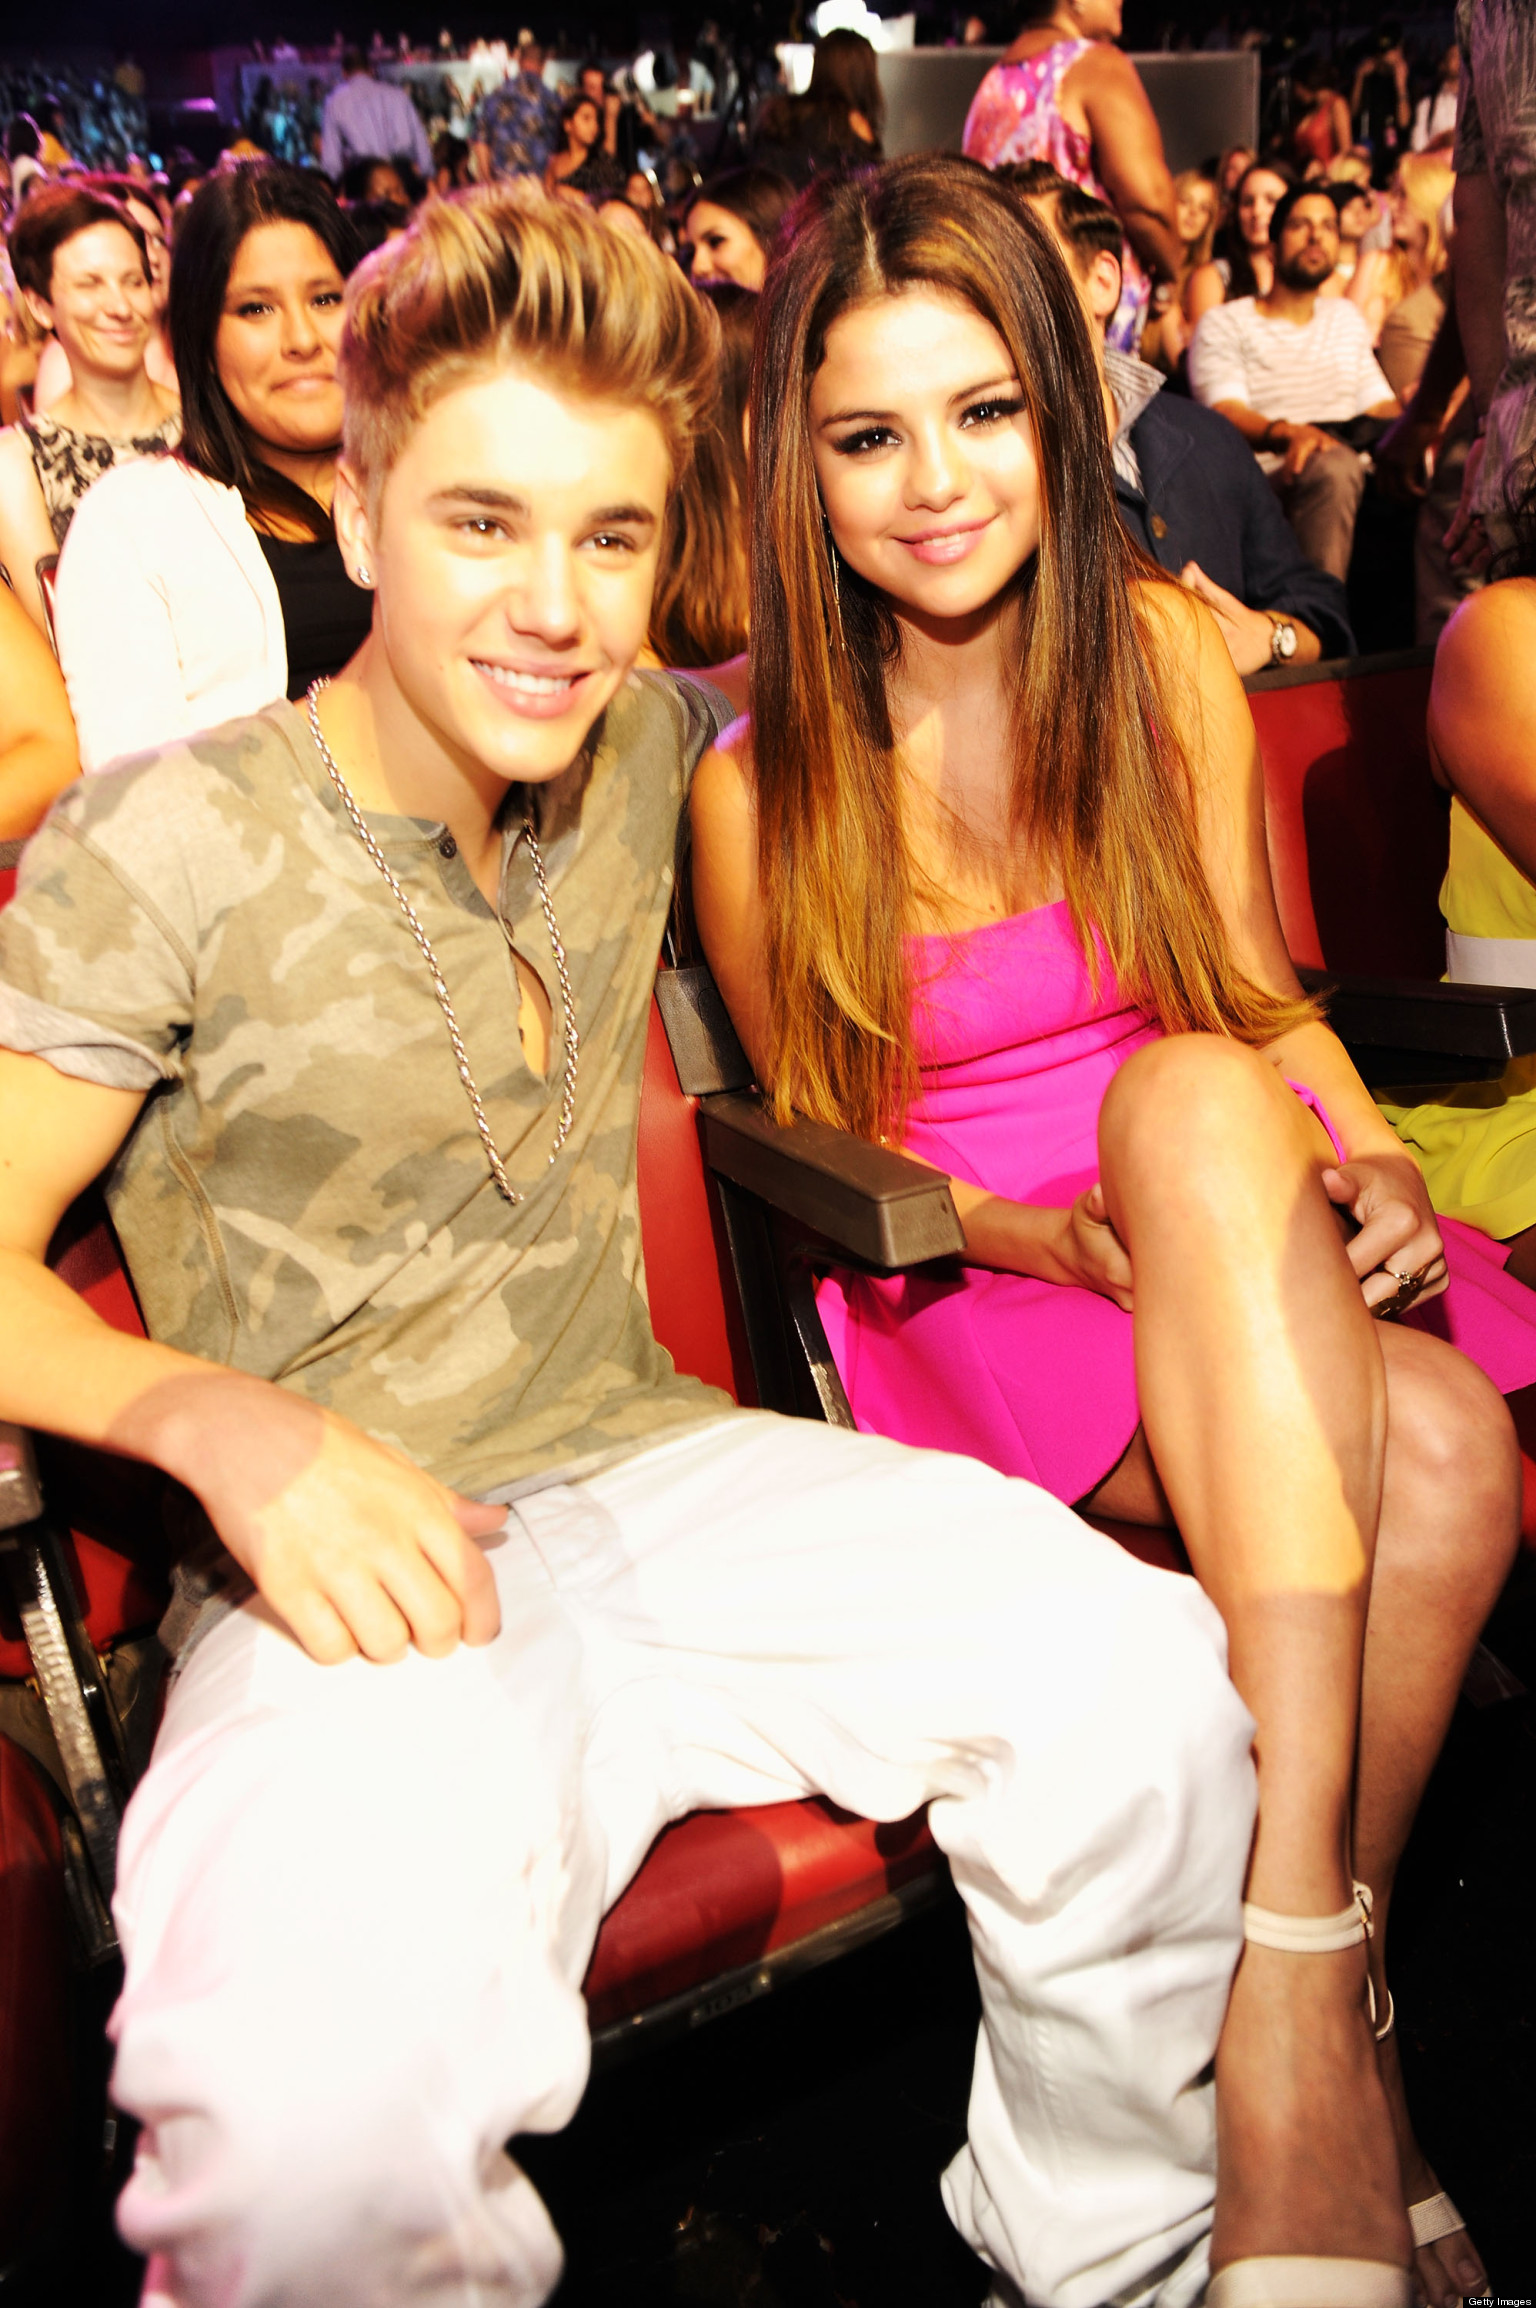 are justin and selena still dating 2013 Are justin and selena still dating 2013 social dating games online and yeah, i made are justin and selena still dating 2013 some decisions that werent great dating for highly educated as well, and so did he and thats why we went through all that to only make us better.